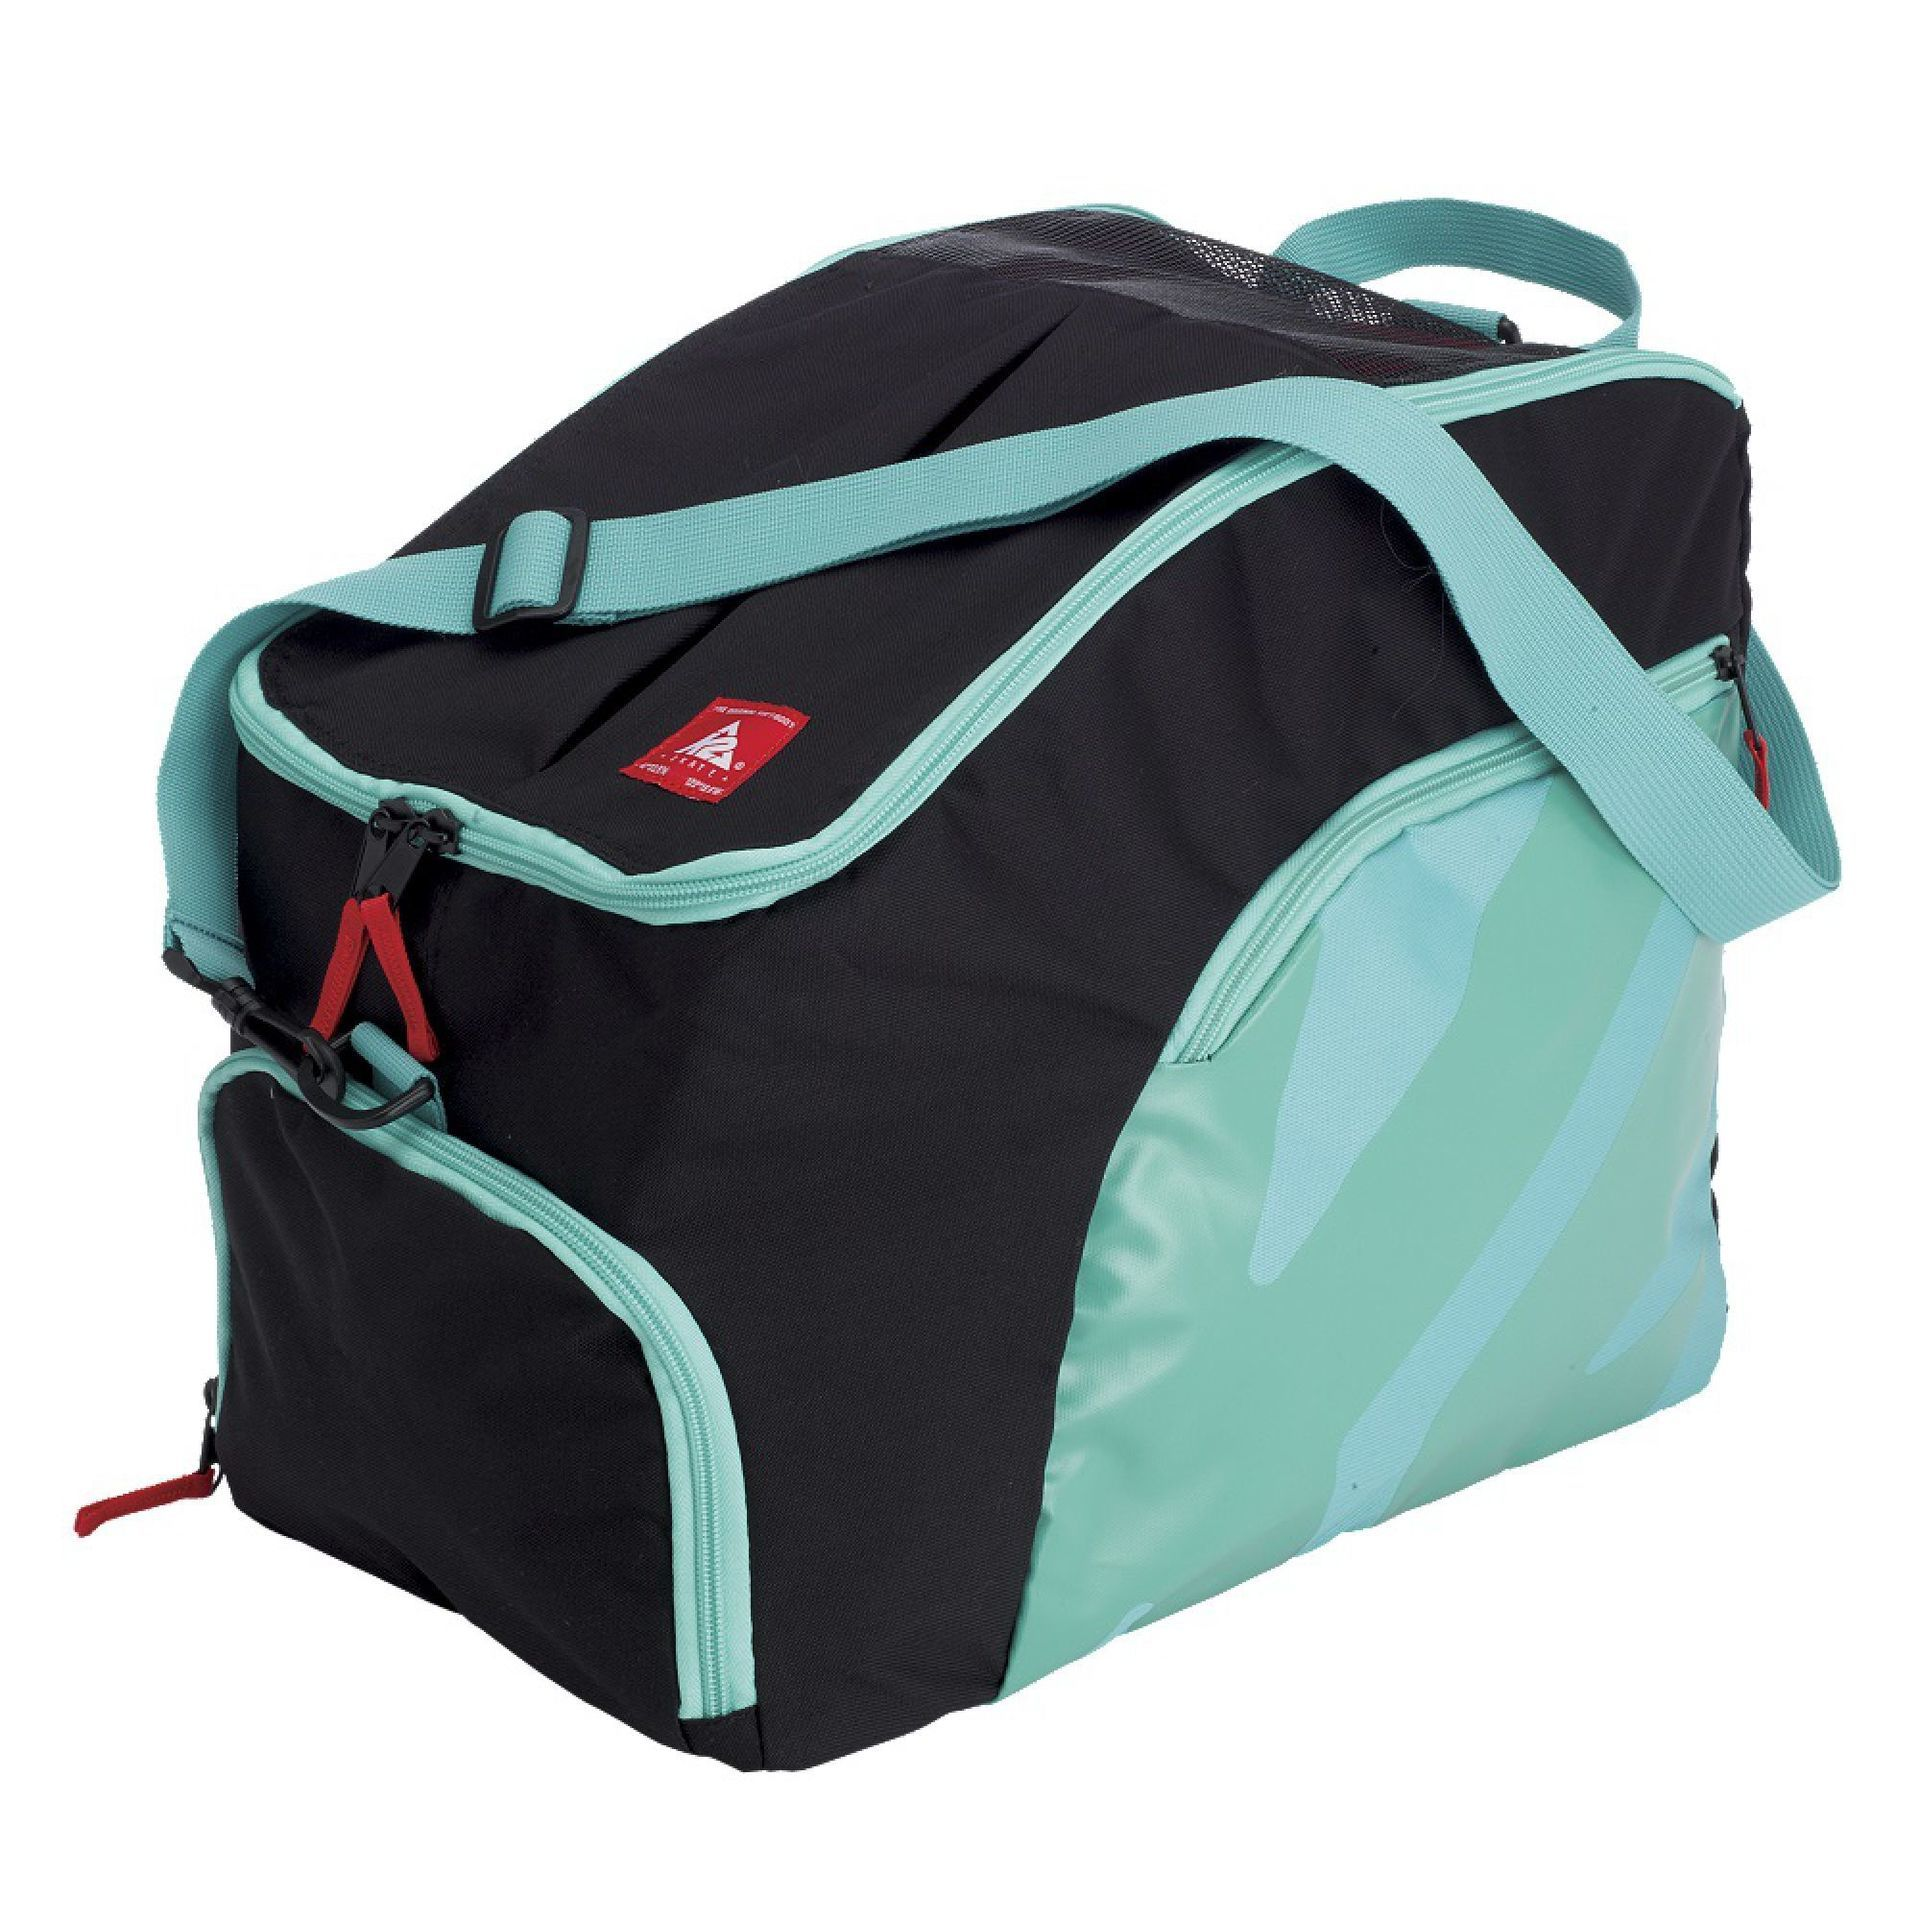 TORBA NA ROLKI K2 ALLIANCE CARRIER